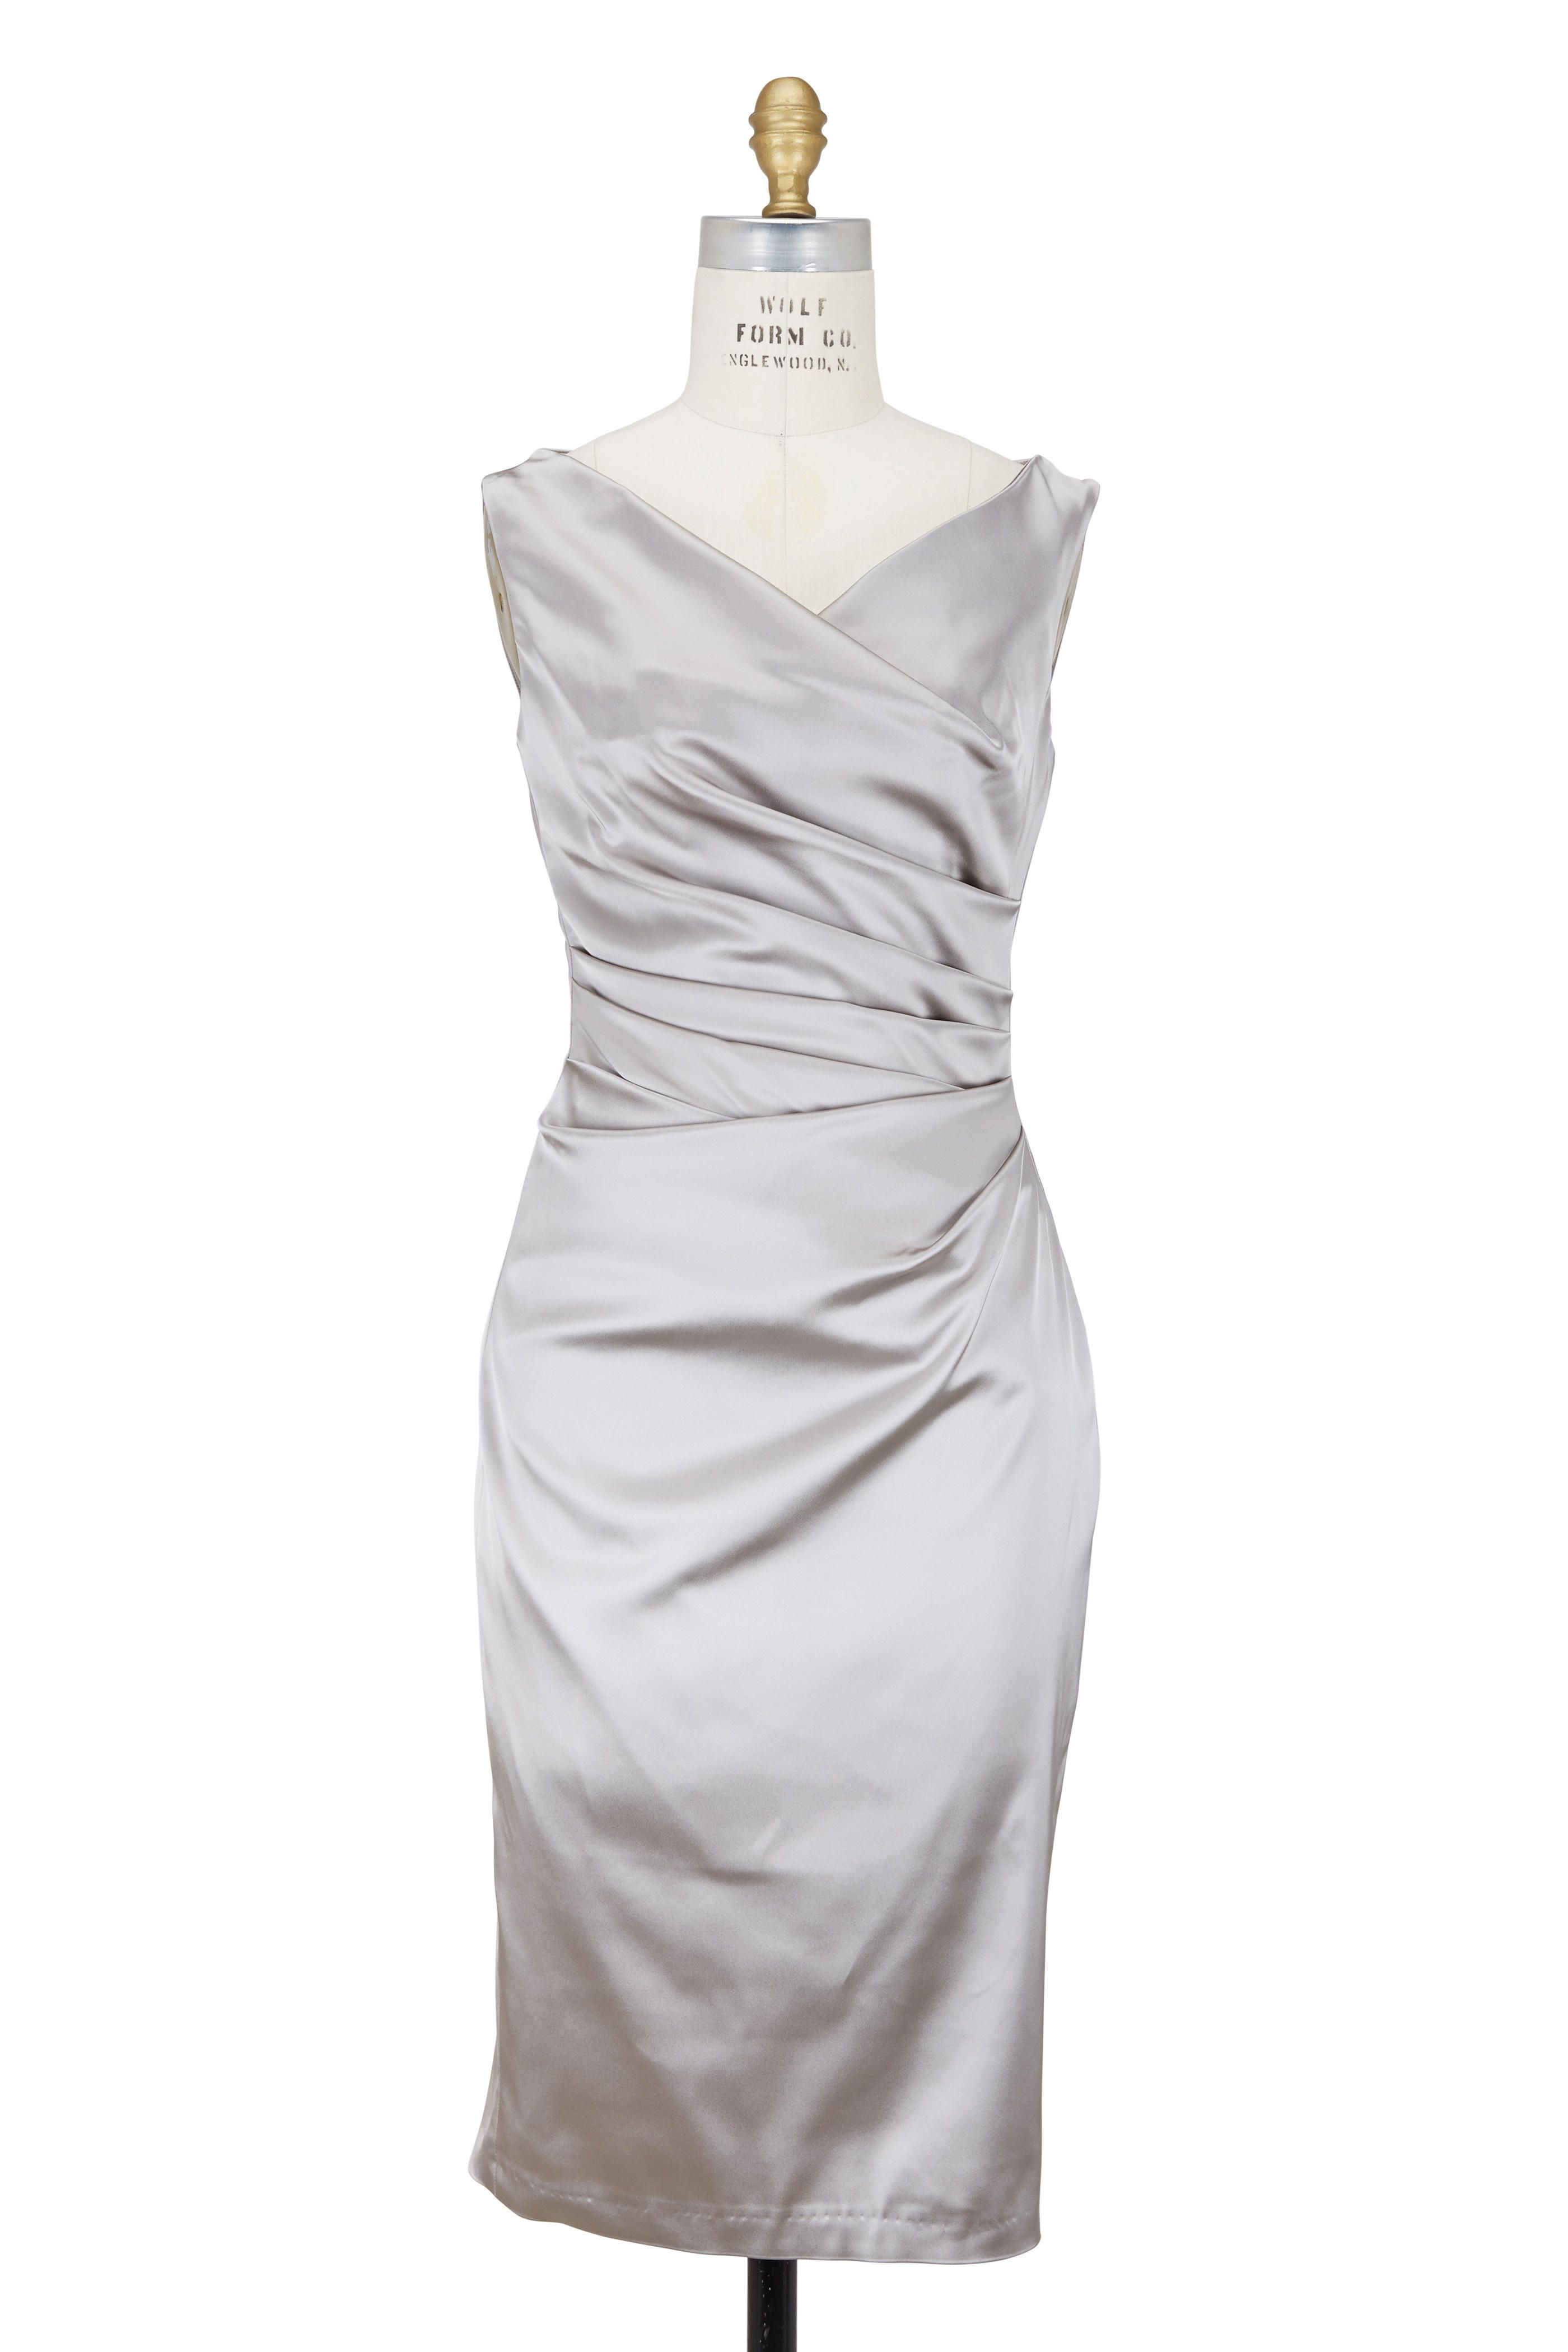 Talbot Runhof Silver Satin Side Ruched Fitted Cocktail Dress Dresses Cocktail Dress Online Dress Shopping [ 4200 x 2800 Pixel ]